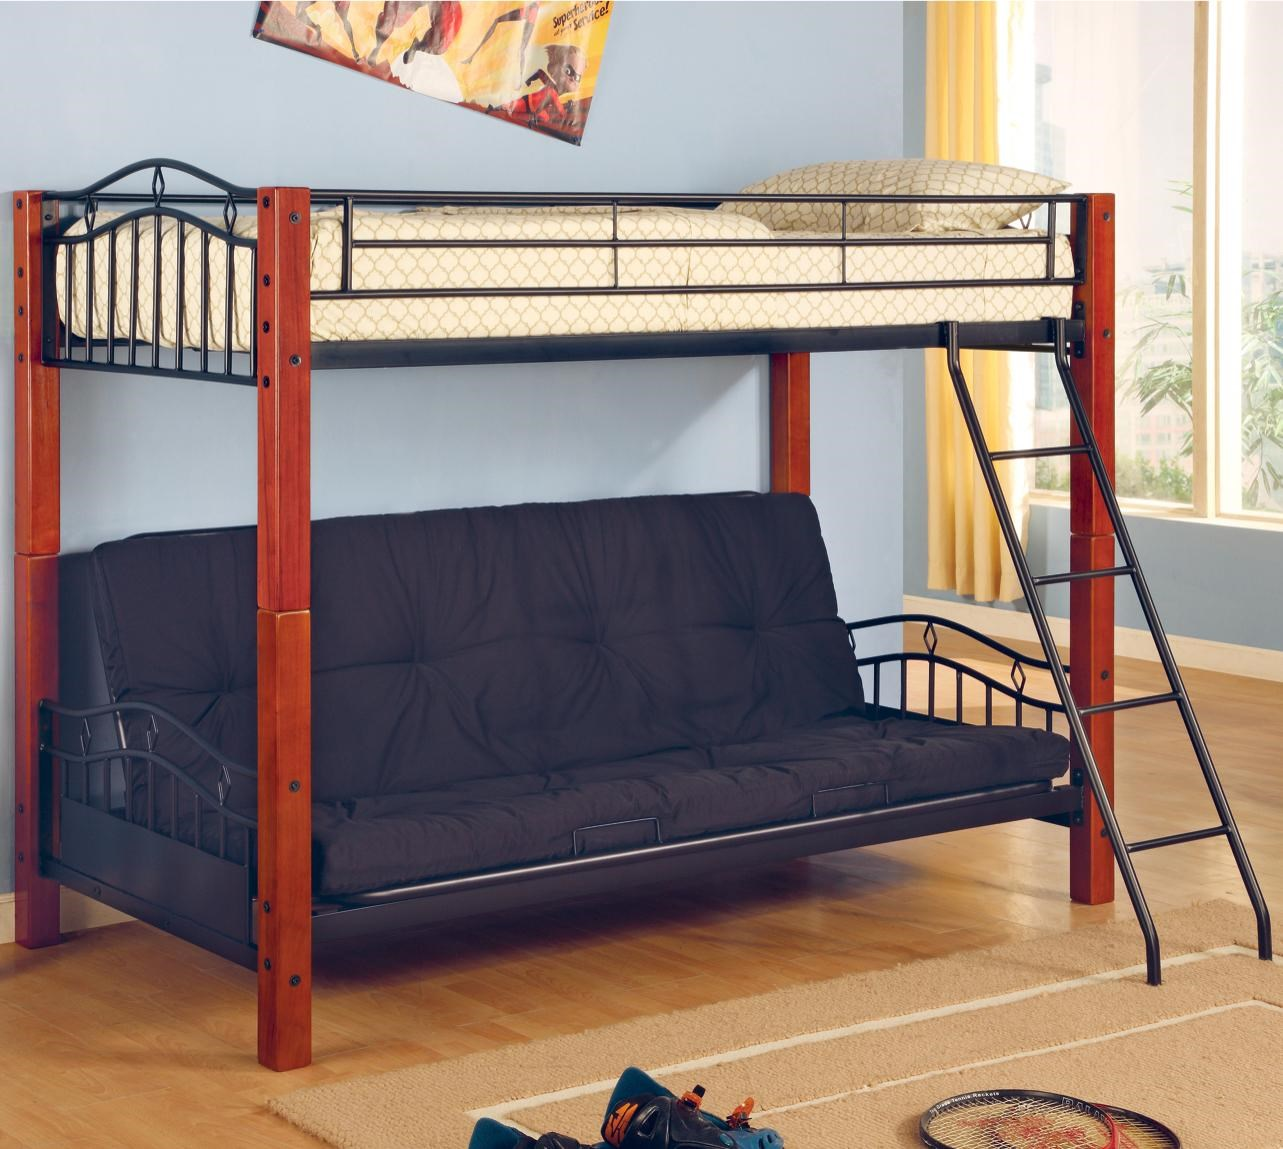 coaster haskell metal and wood casual twin over futon bunk bed   coaster fine furniture coaster haskell metal and wood casual twin over futon bunk bed      rh   coasterfurniture